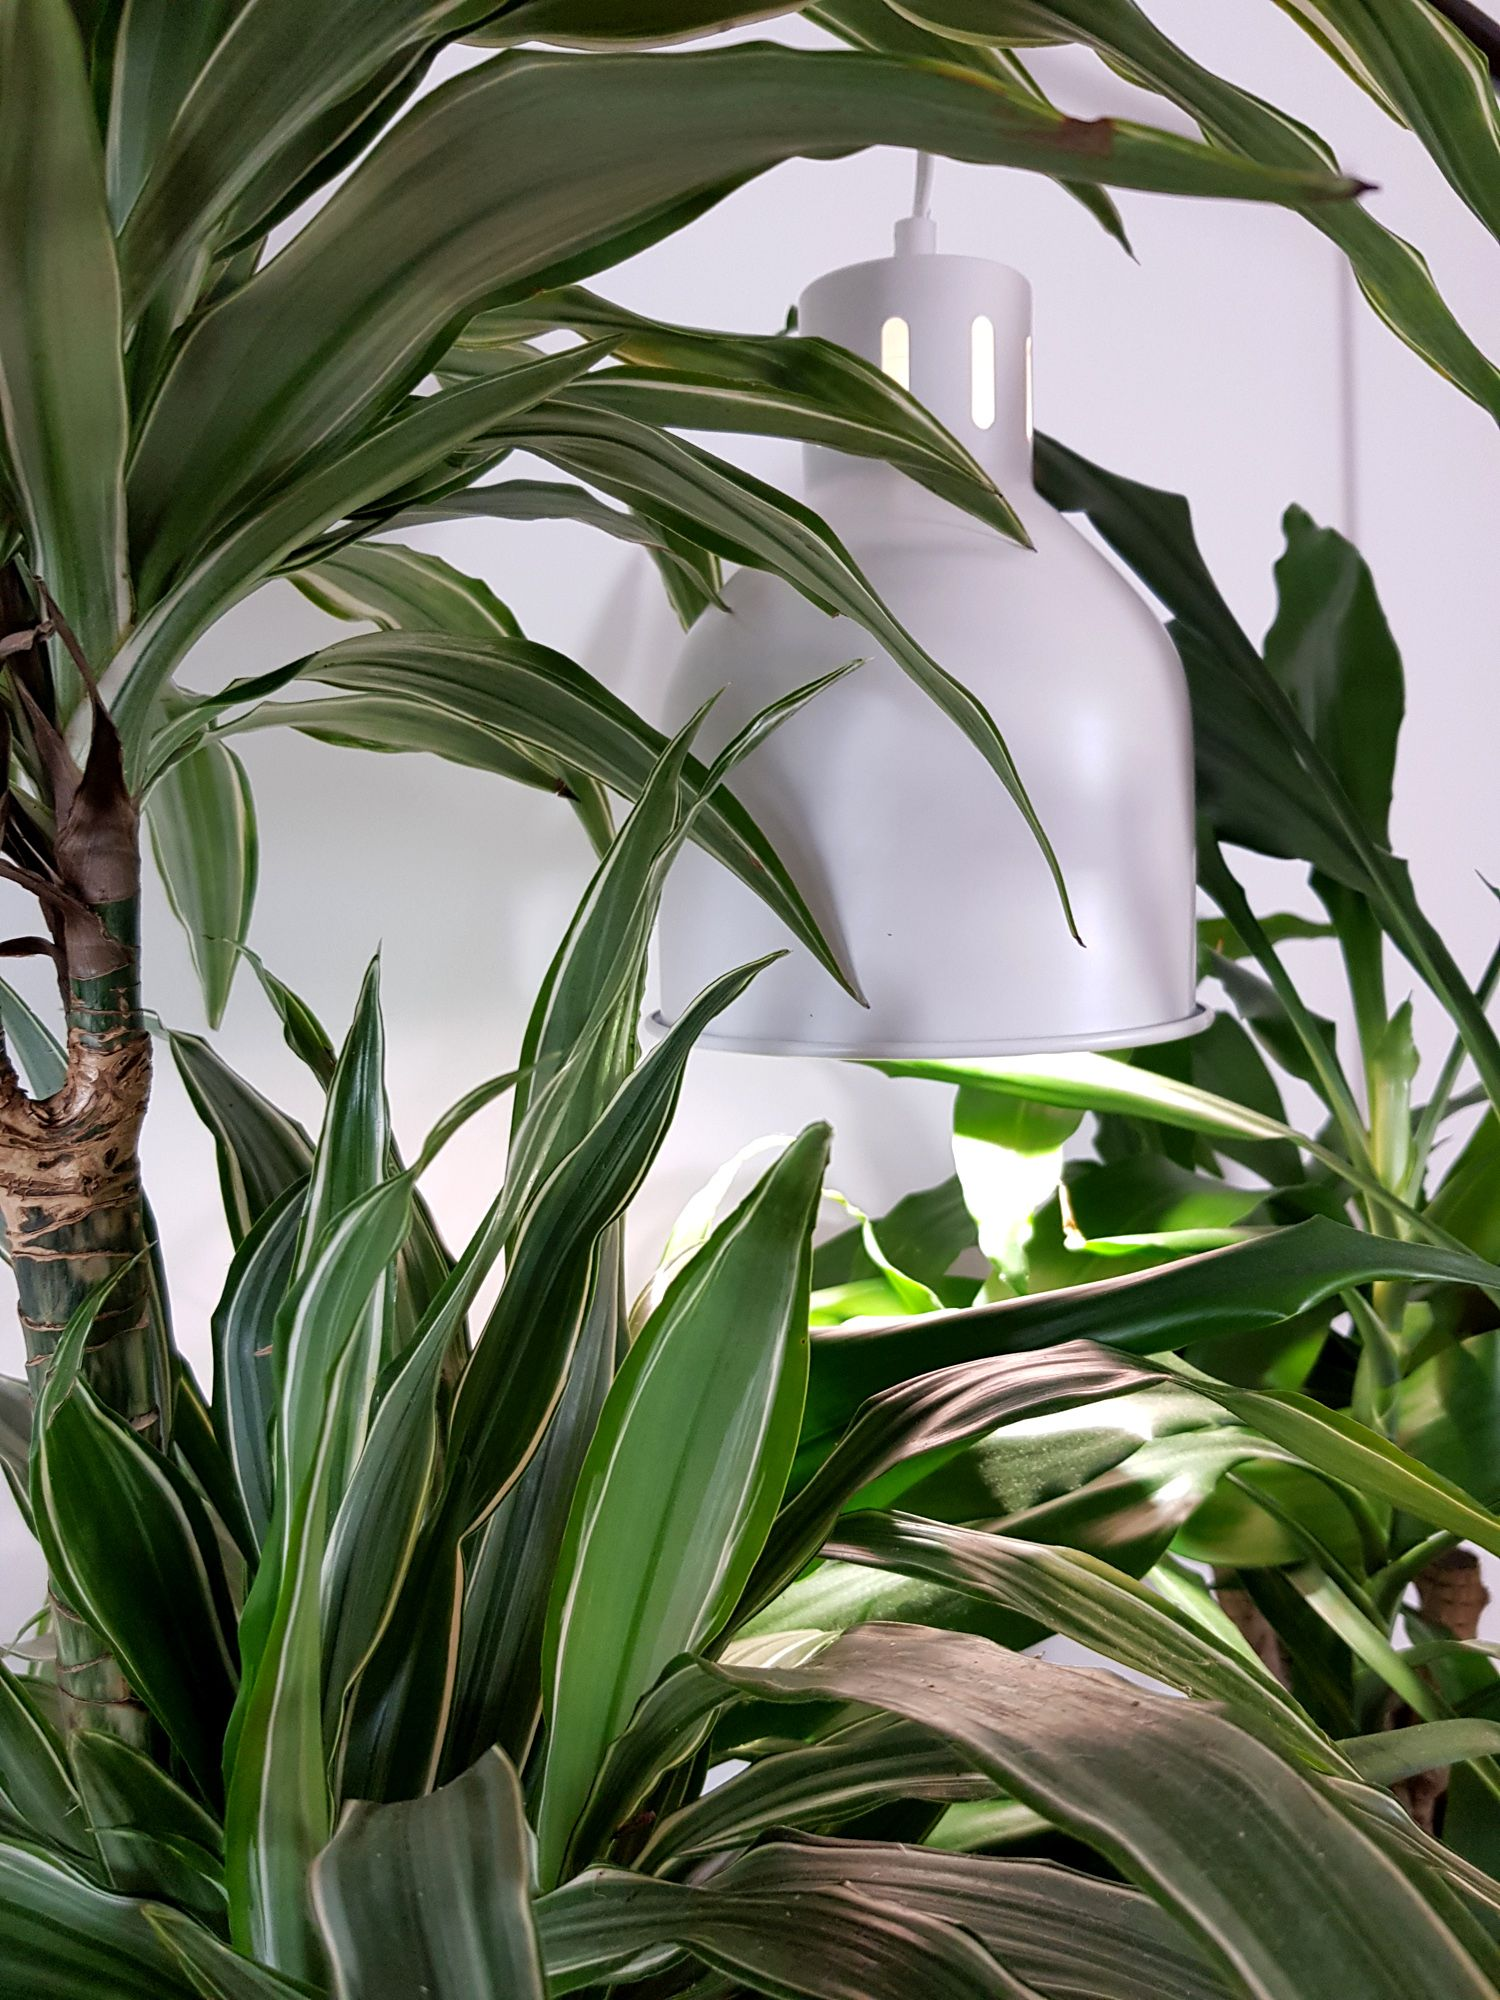 Da Wachst Der Urbanjungle Ja Glatt Uber Die Pflanzenlampe Hinaus Plant Leaves Plants Leaves